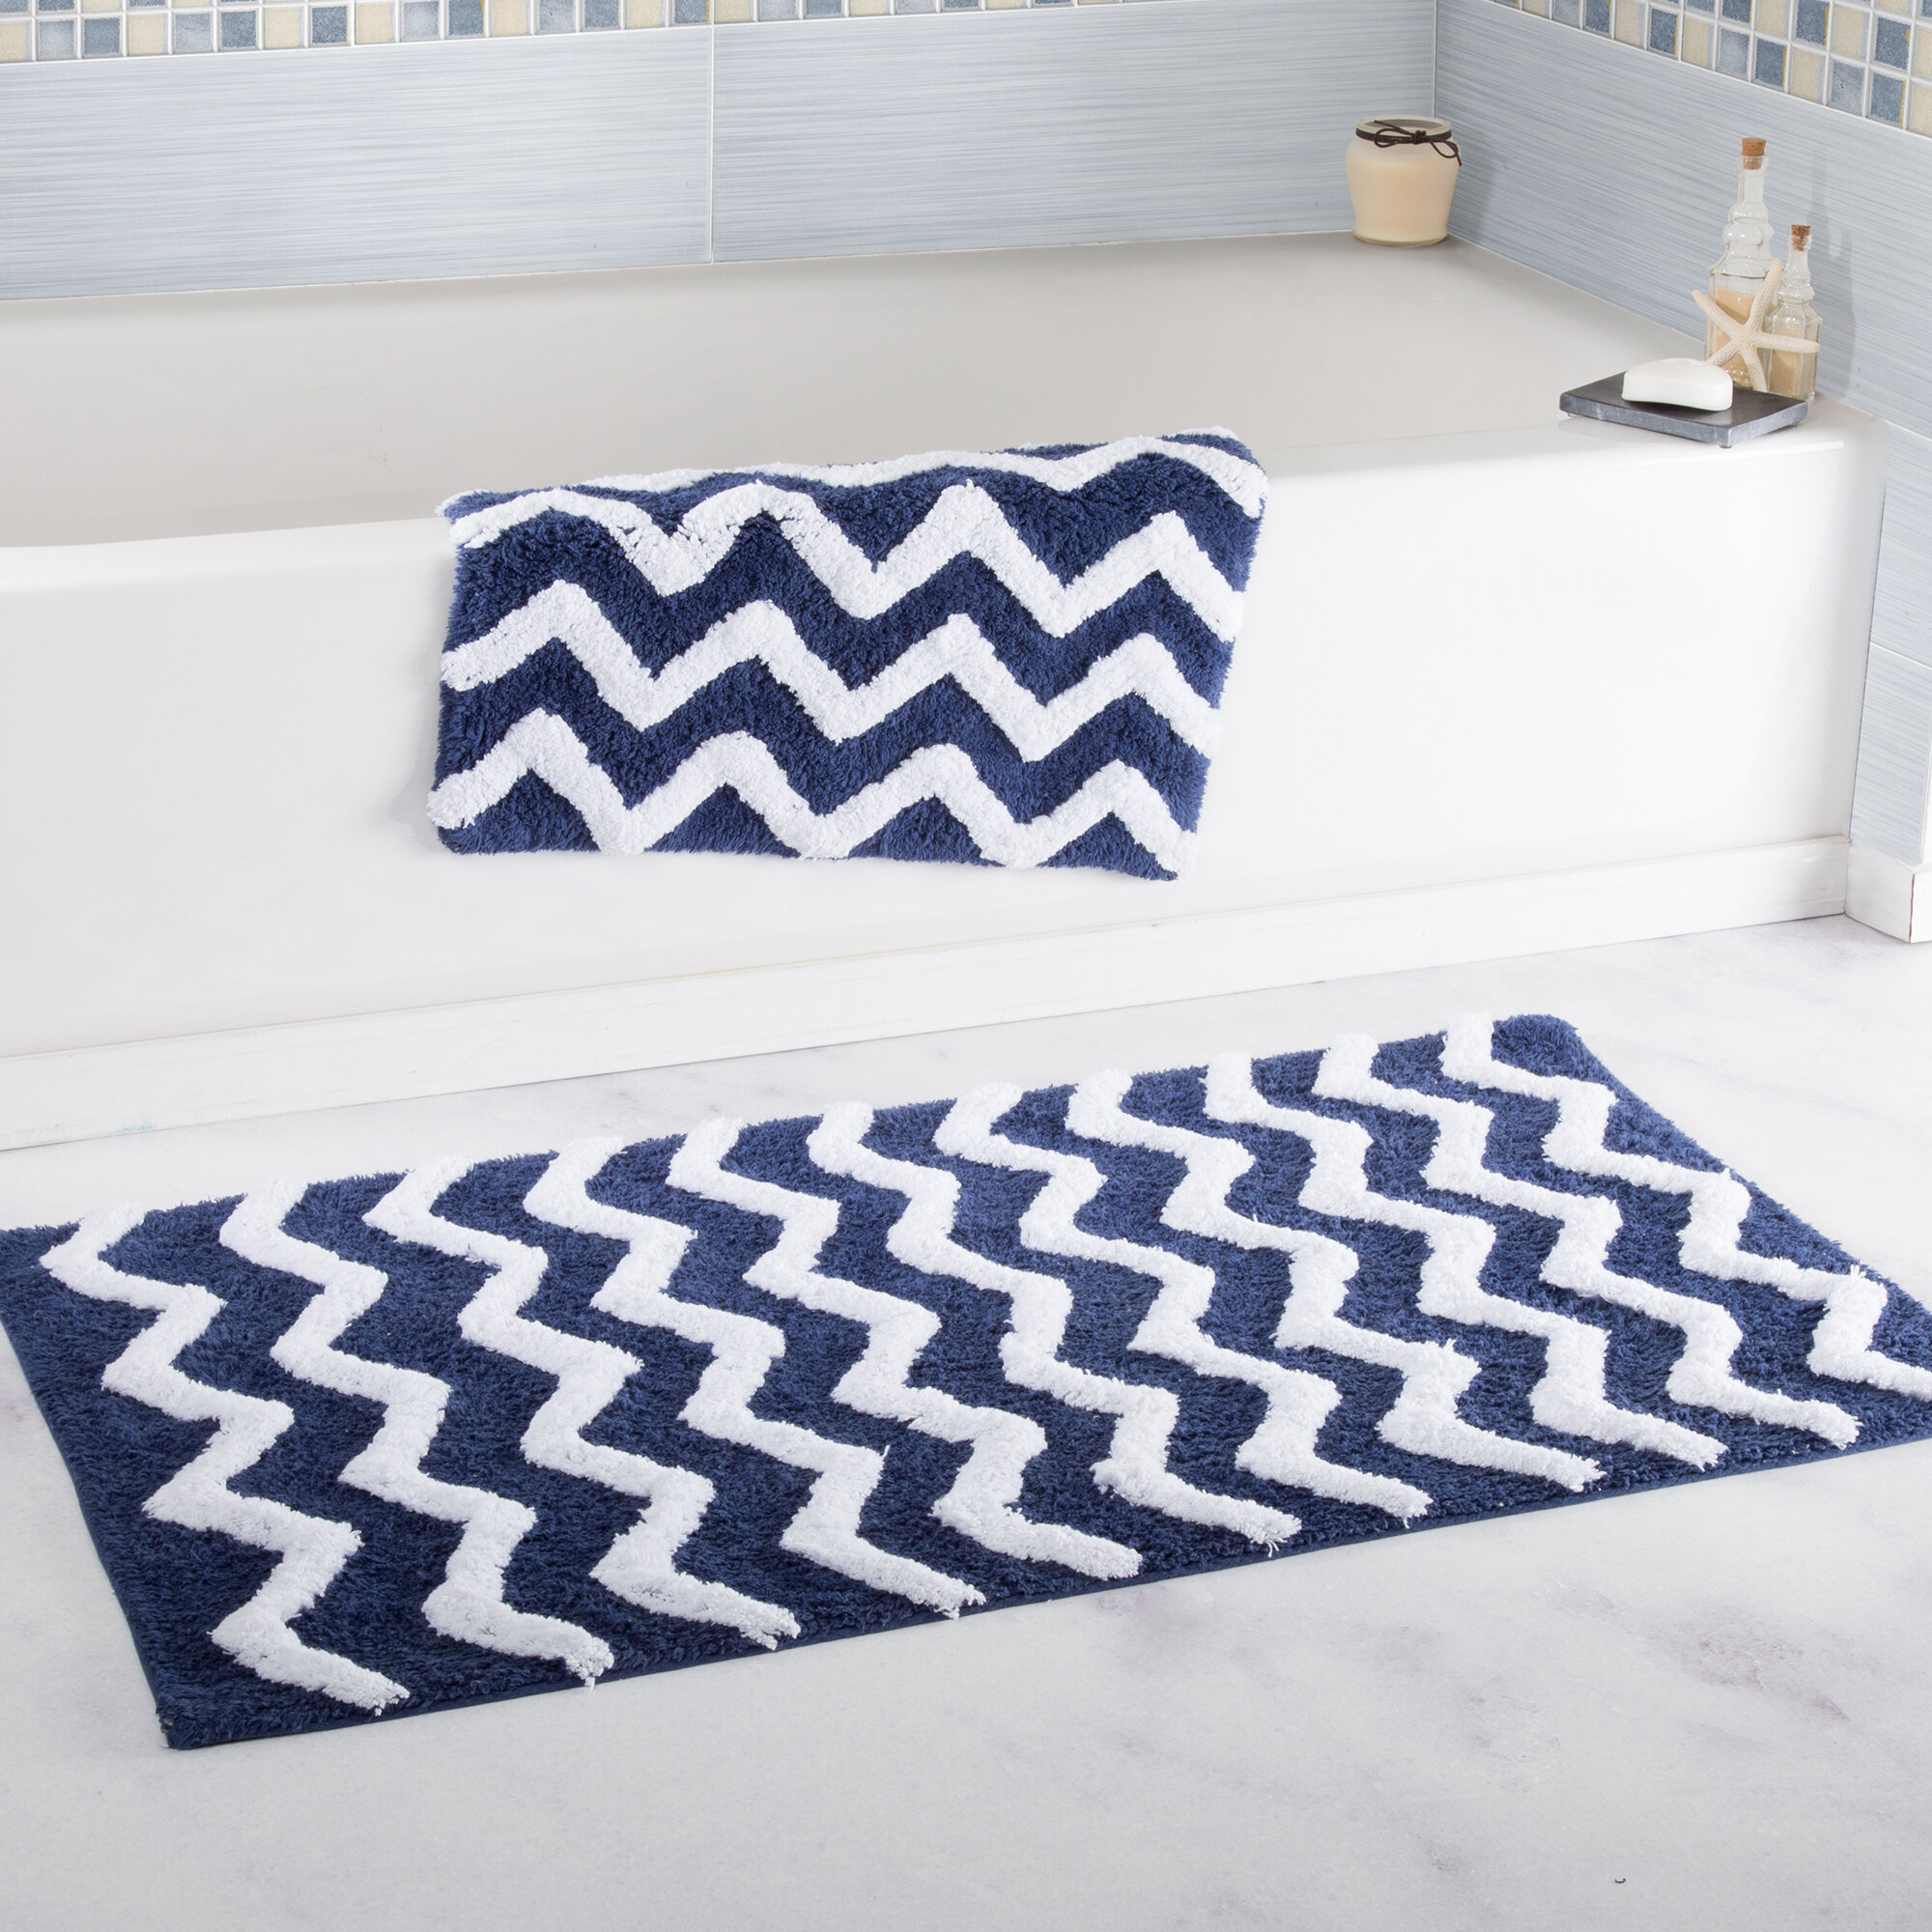 designs rugs full bath piece size rug home sets intended ring for bathroom images chocolate set of best walmart with